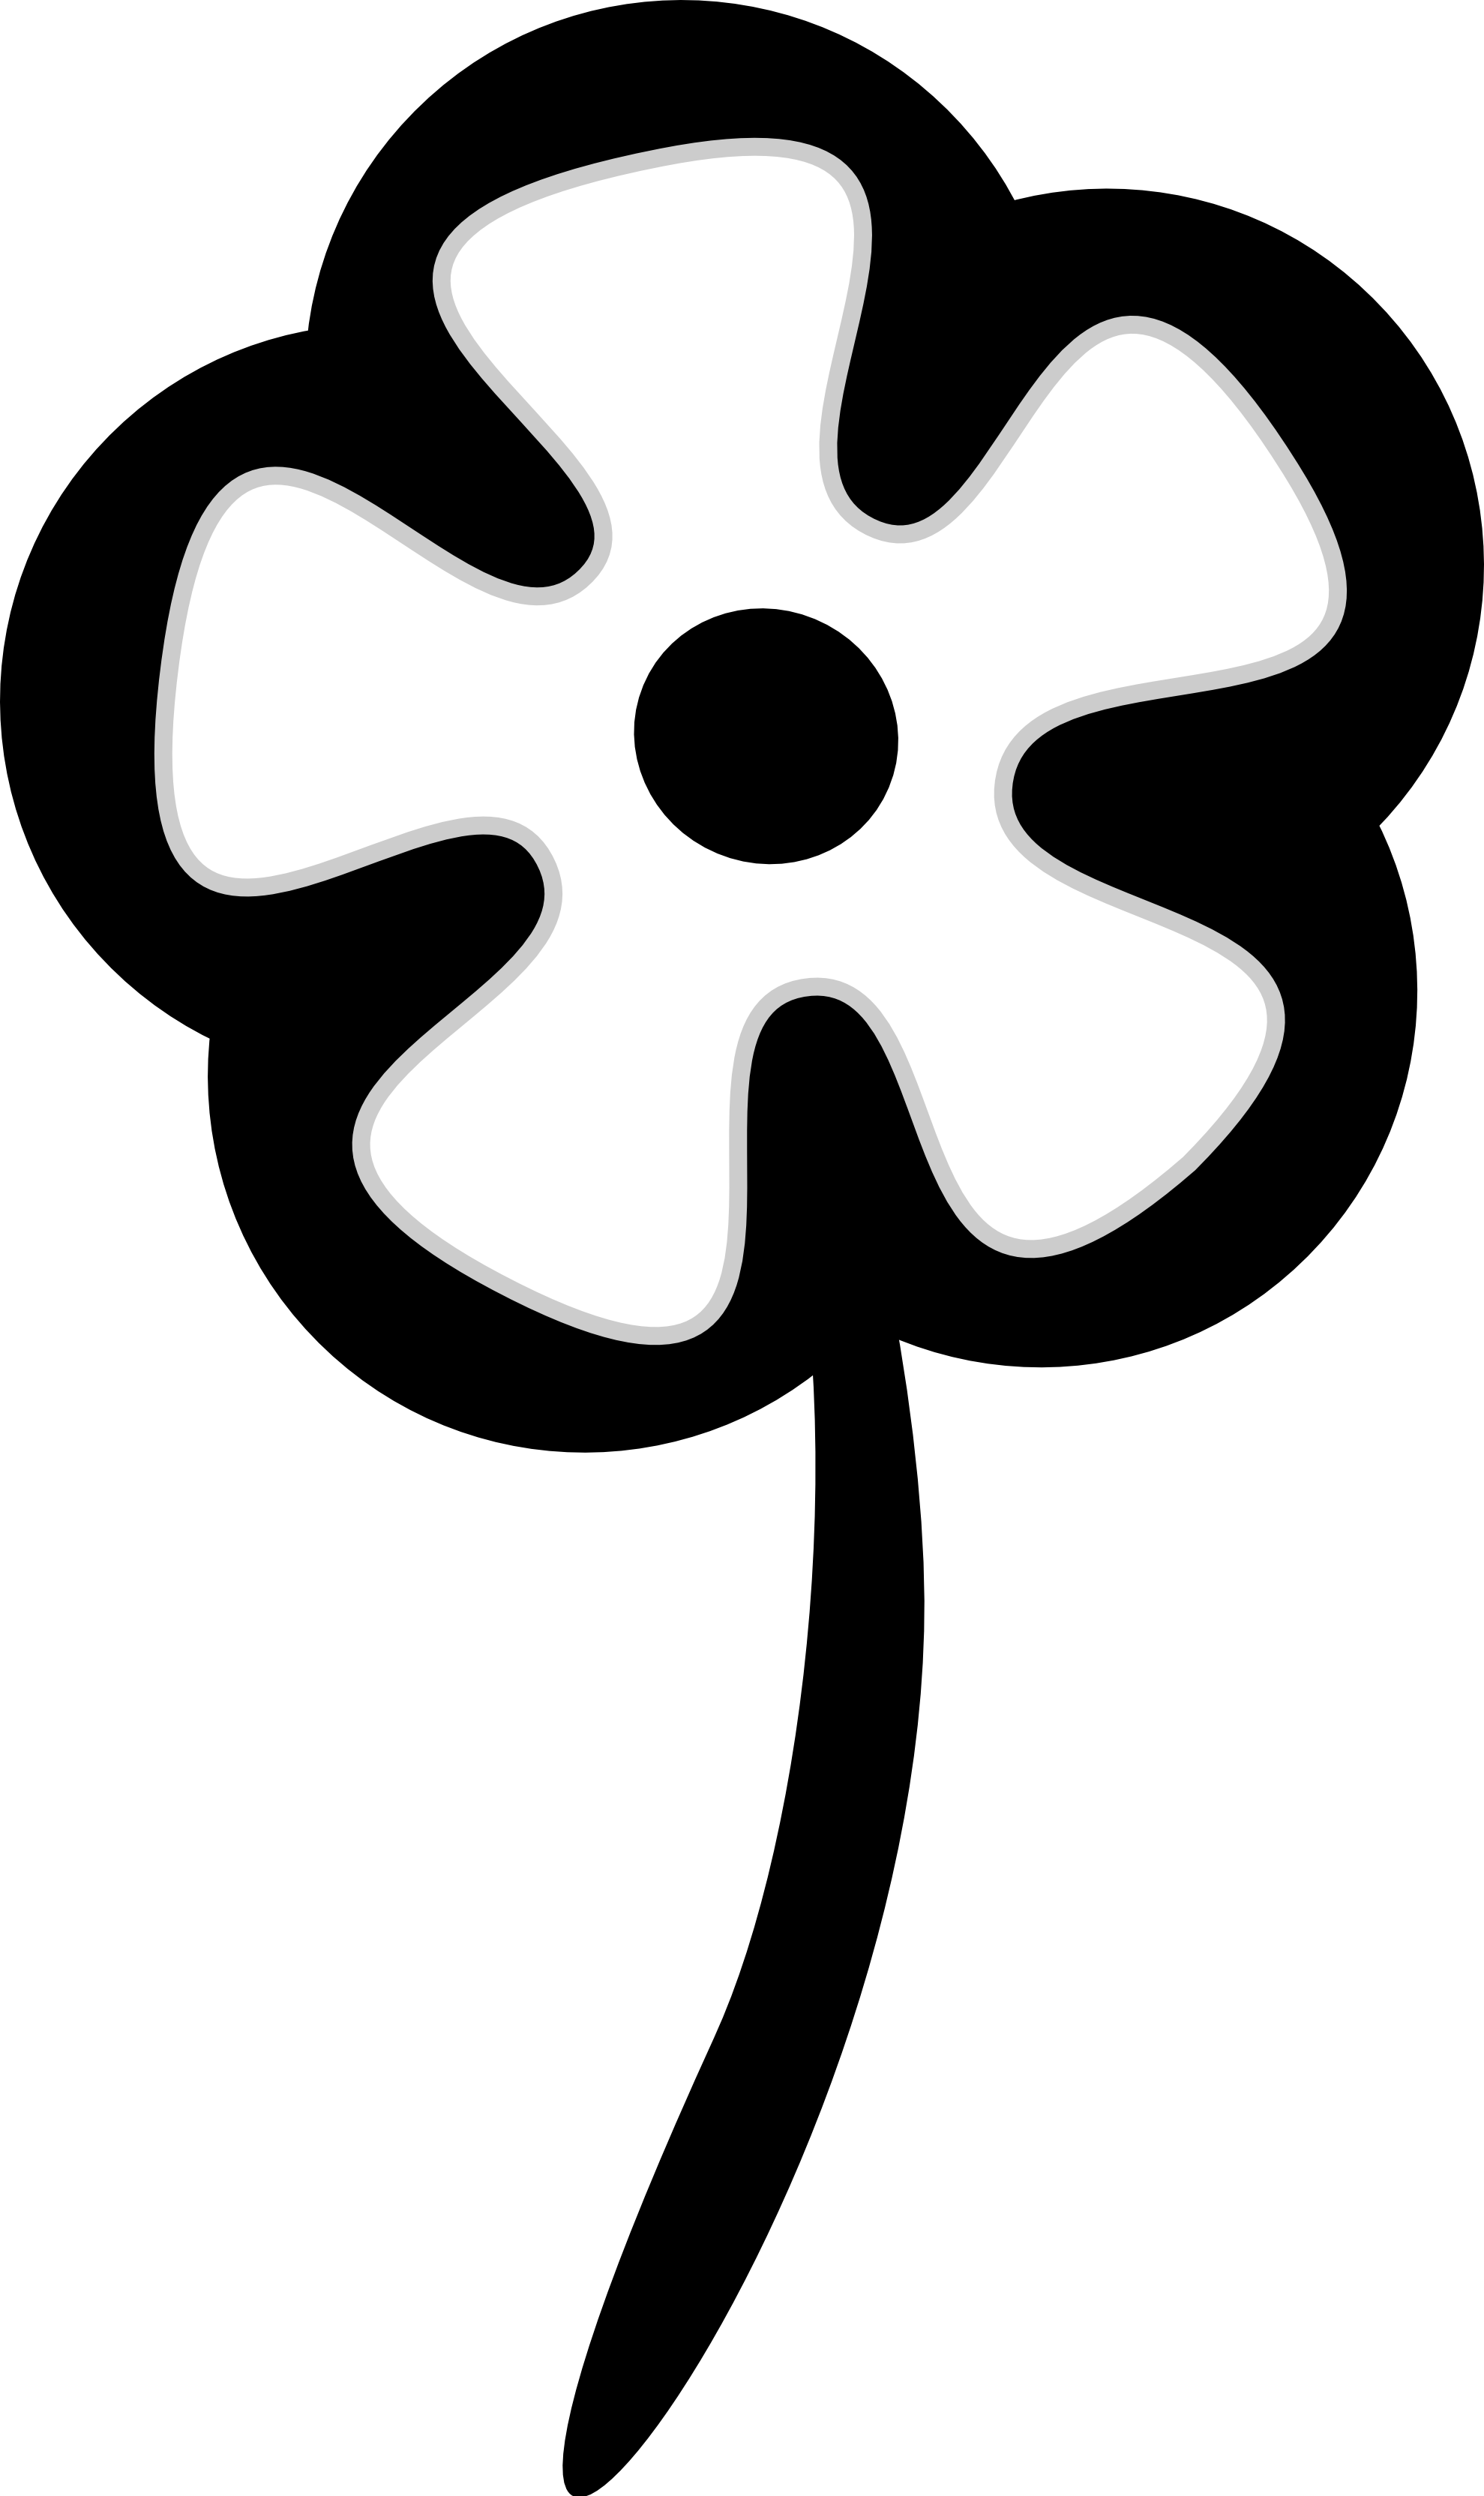 Clip art flower panda. Excited clipart black and white